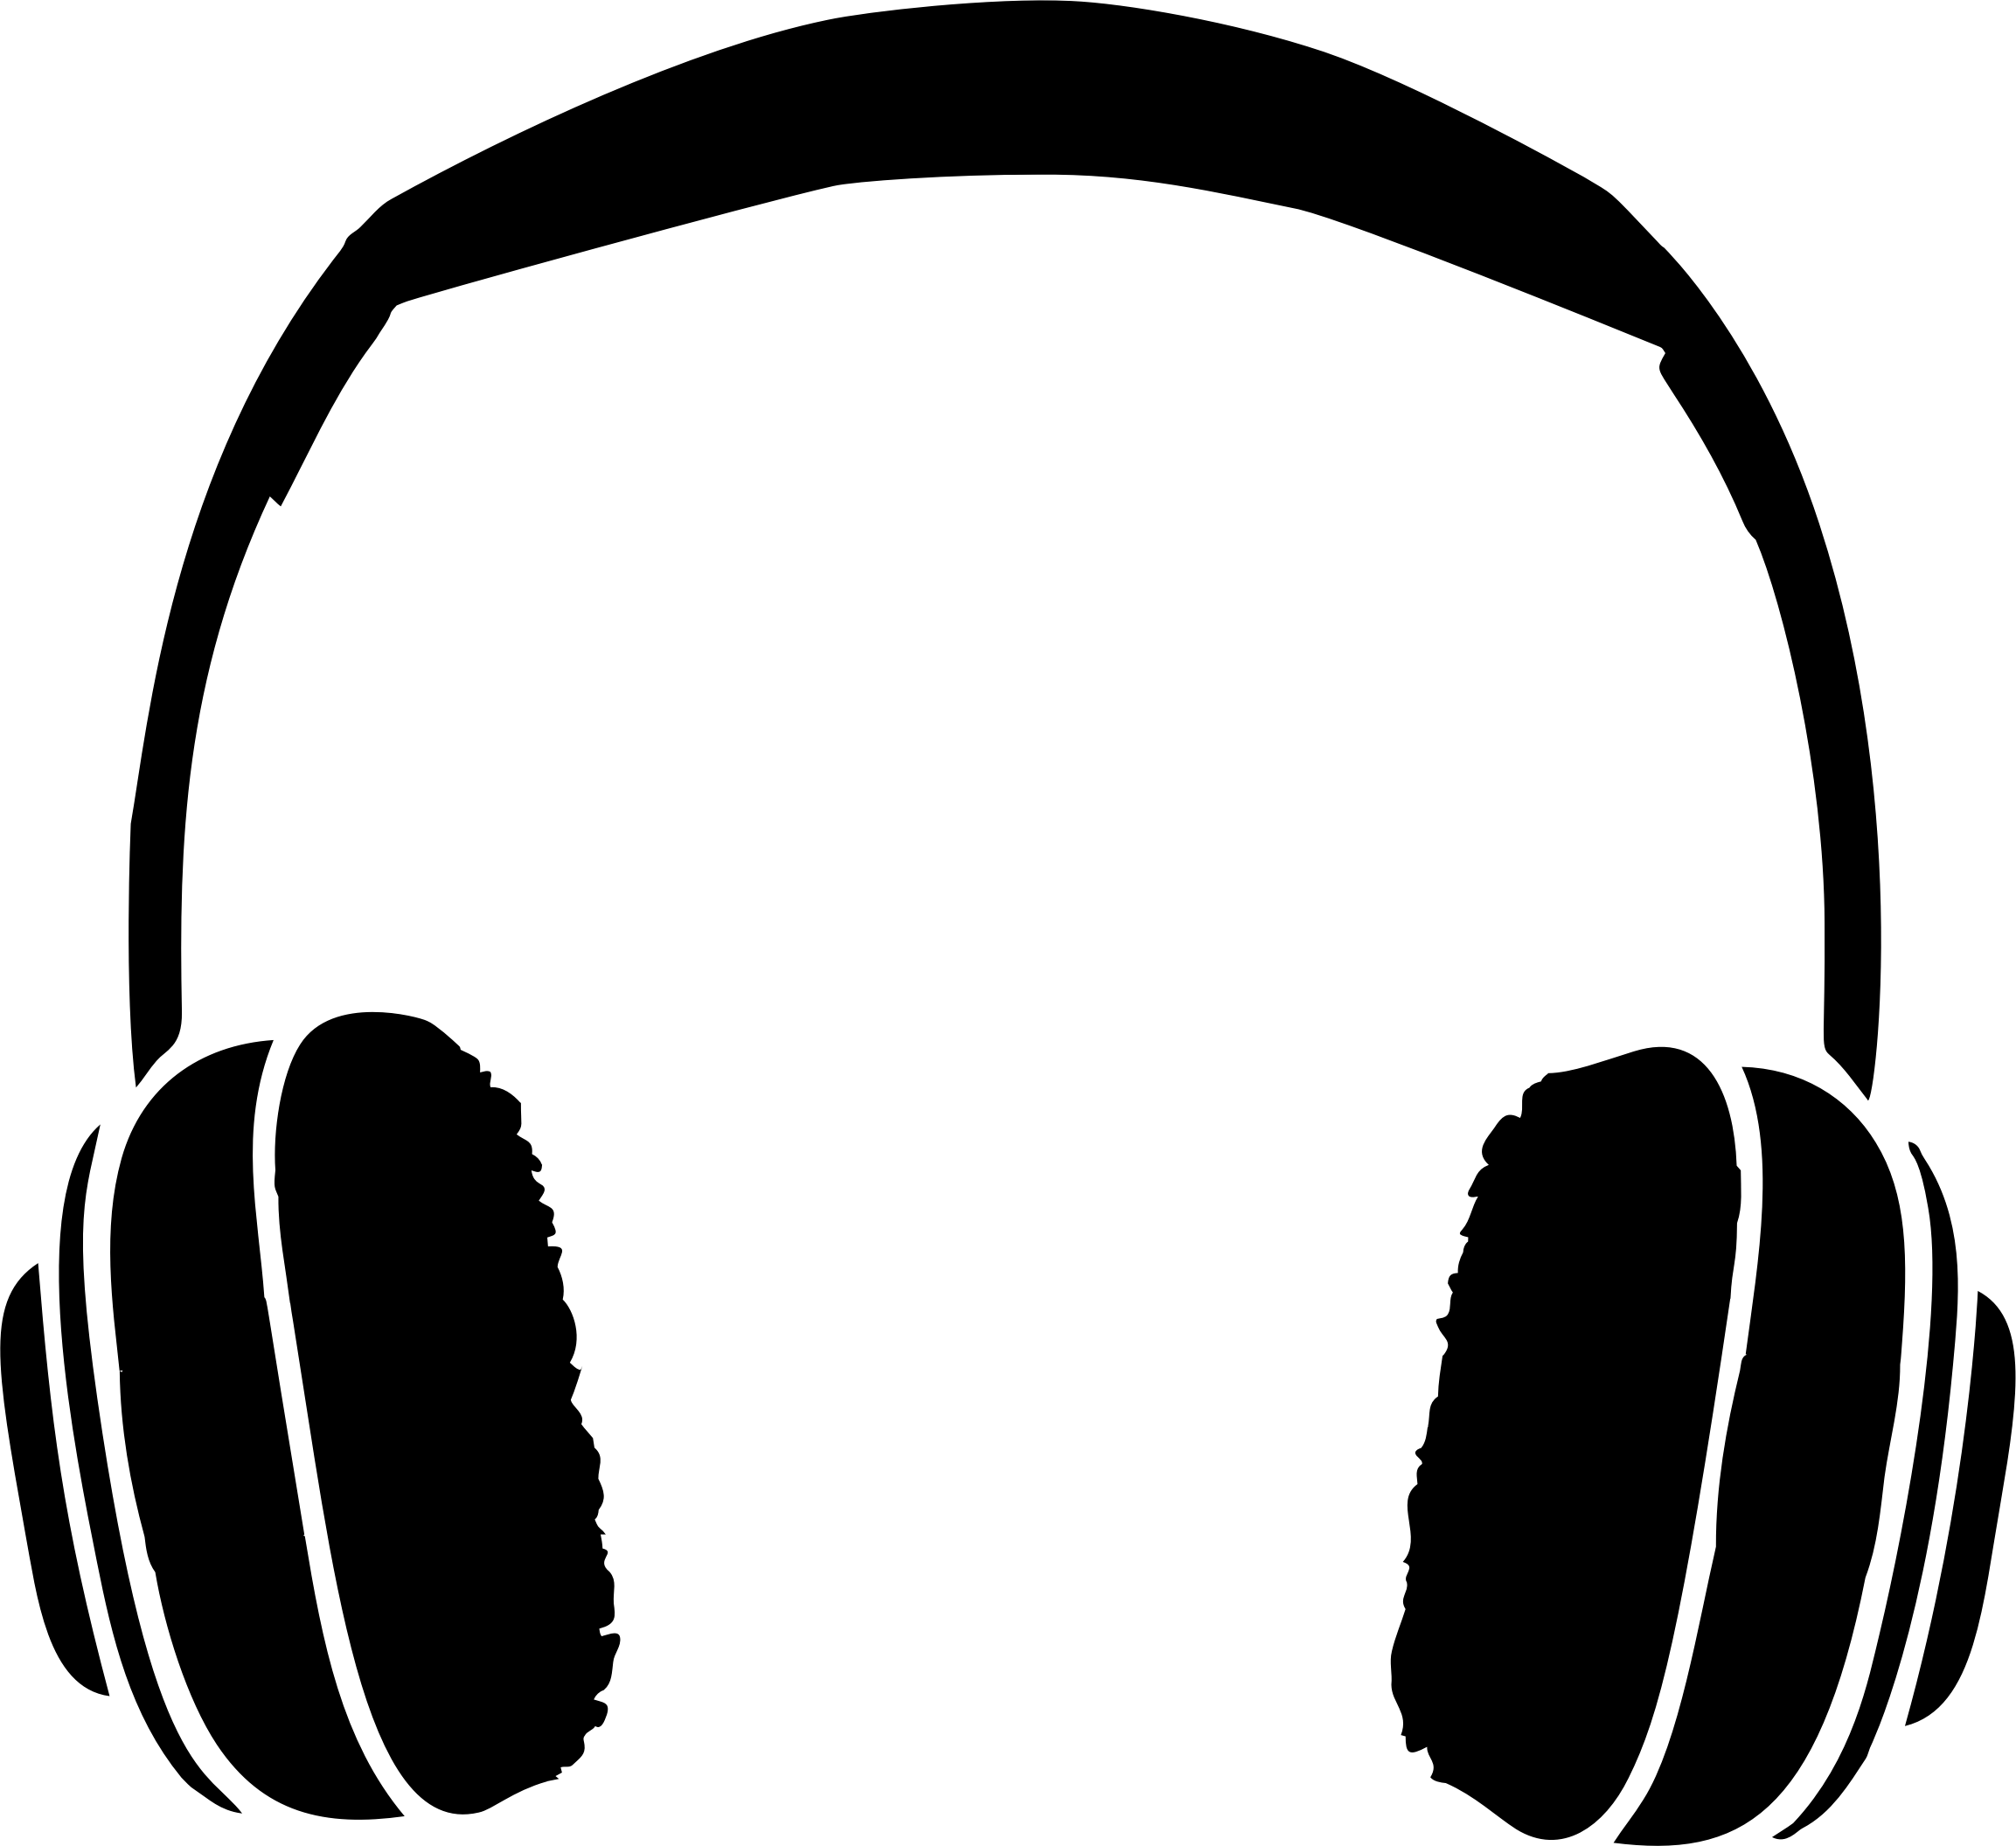 Headphones clipart head phone. Headphone to download free